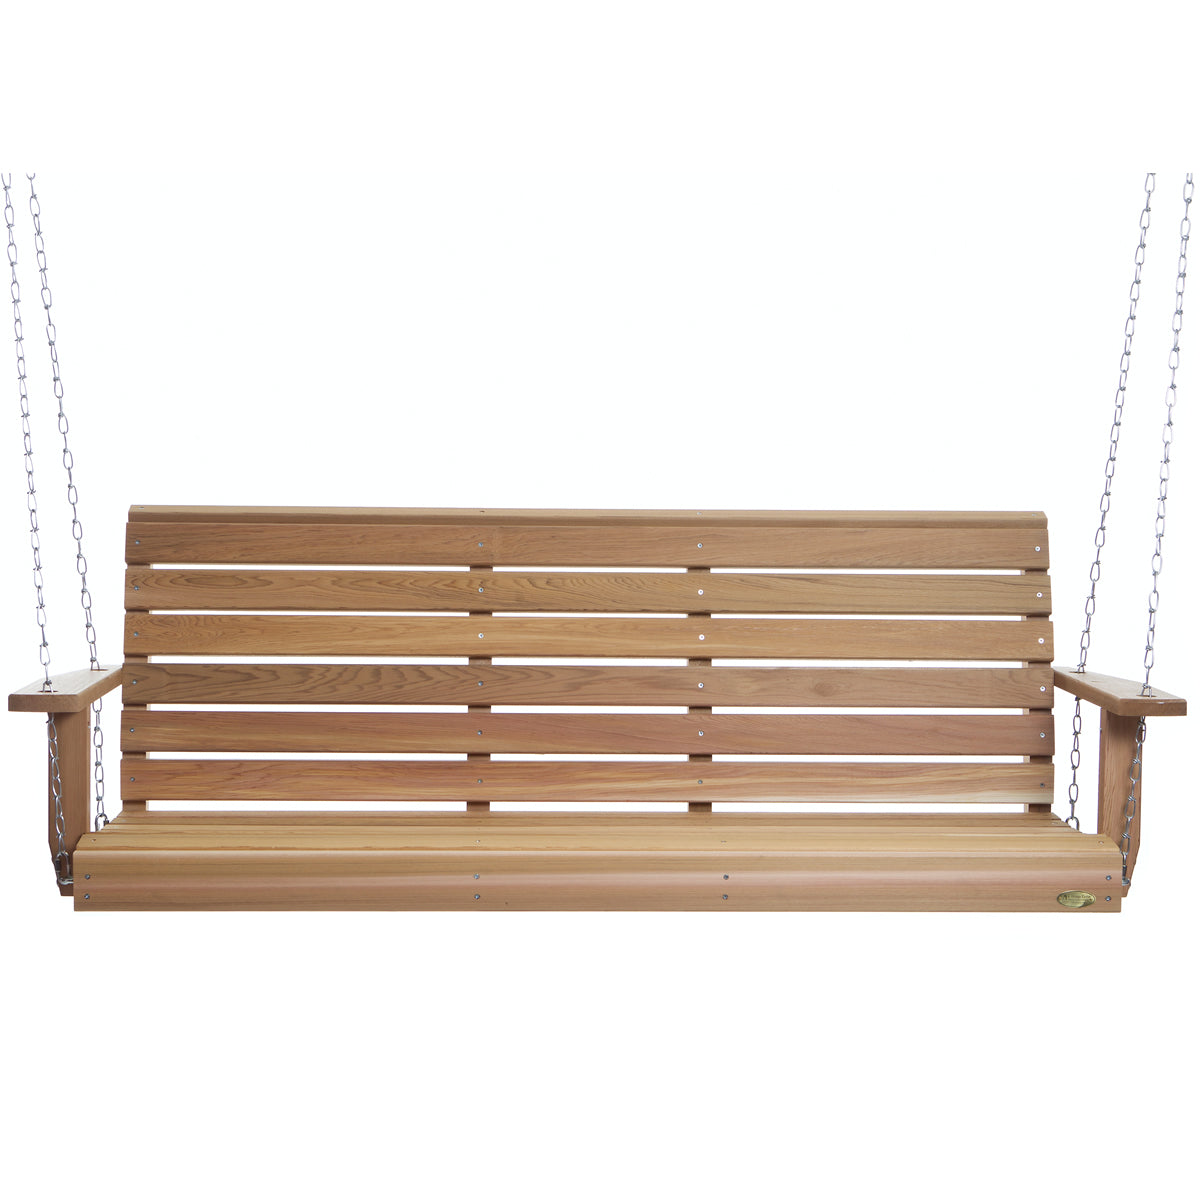 Porch Swing 5' By All Things Cedar